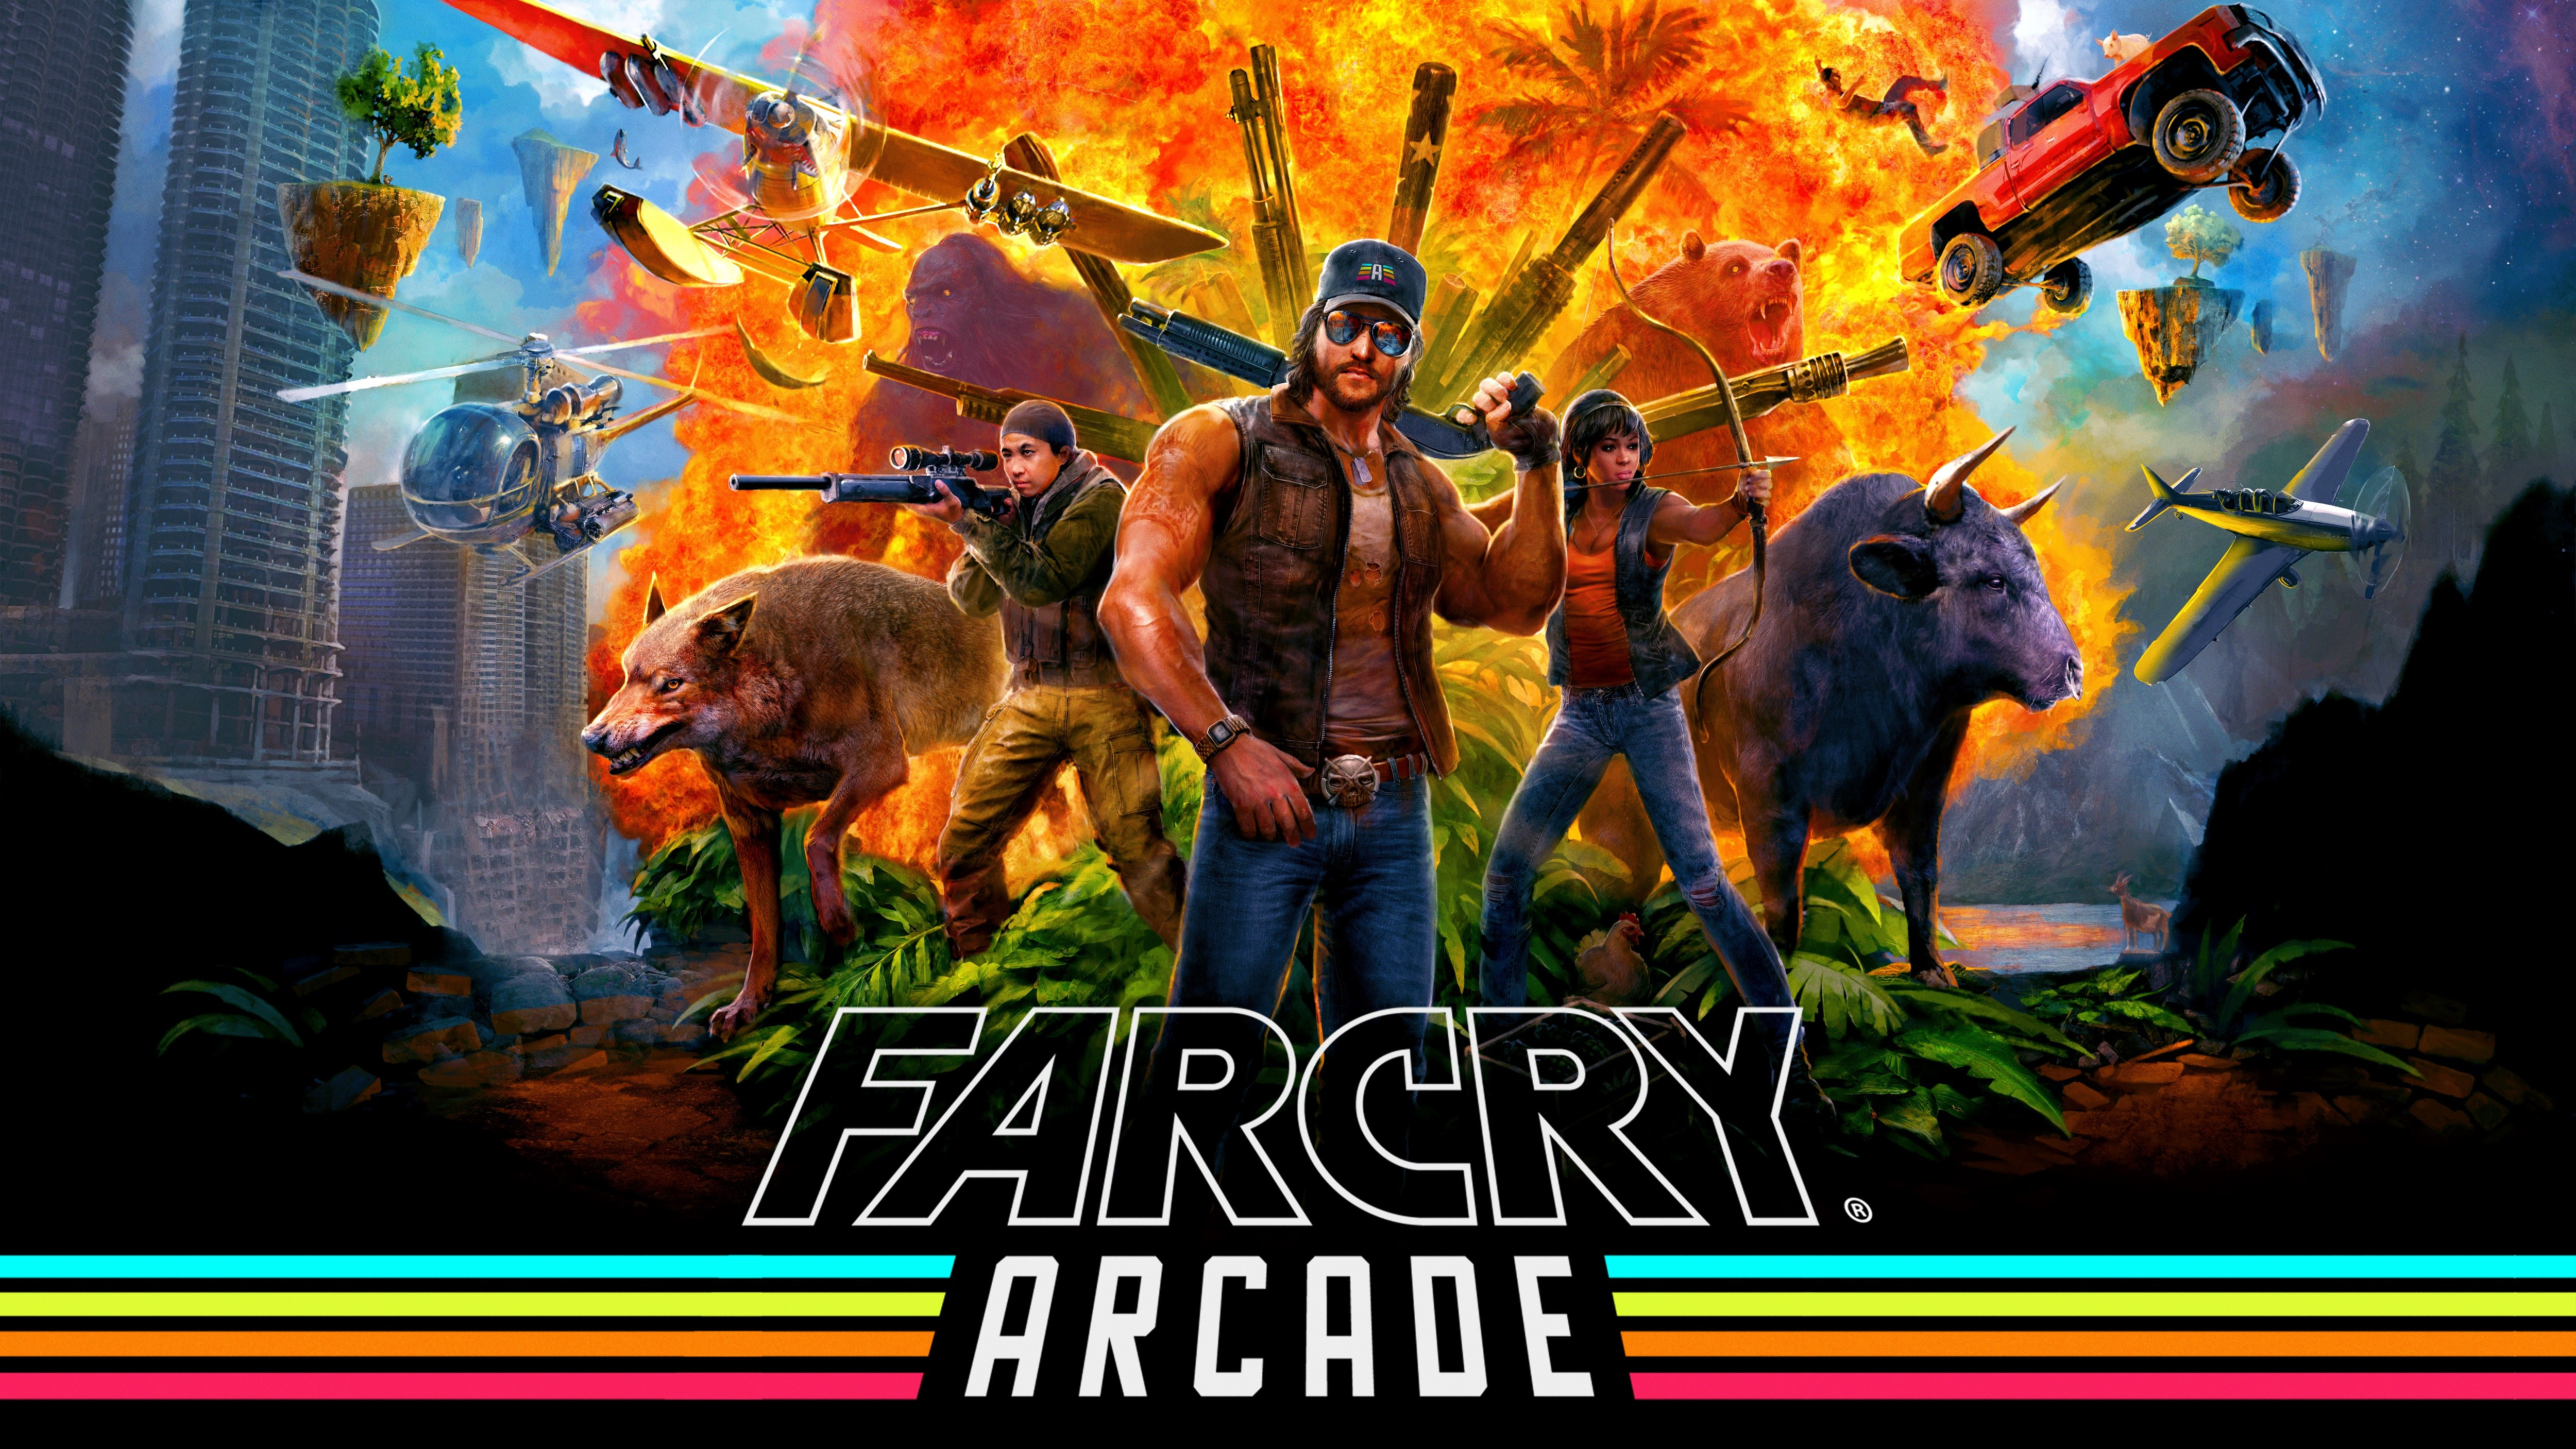 Far Cry 5 Arcade 1455814 Hd Wallpaper Backgrounds Download